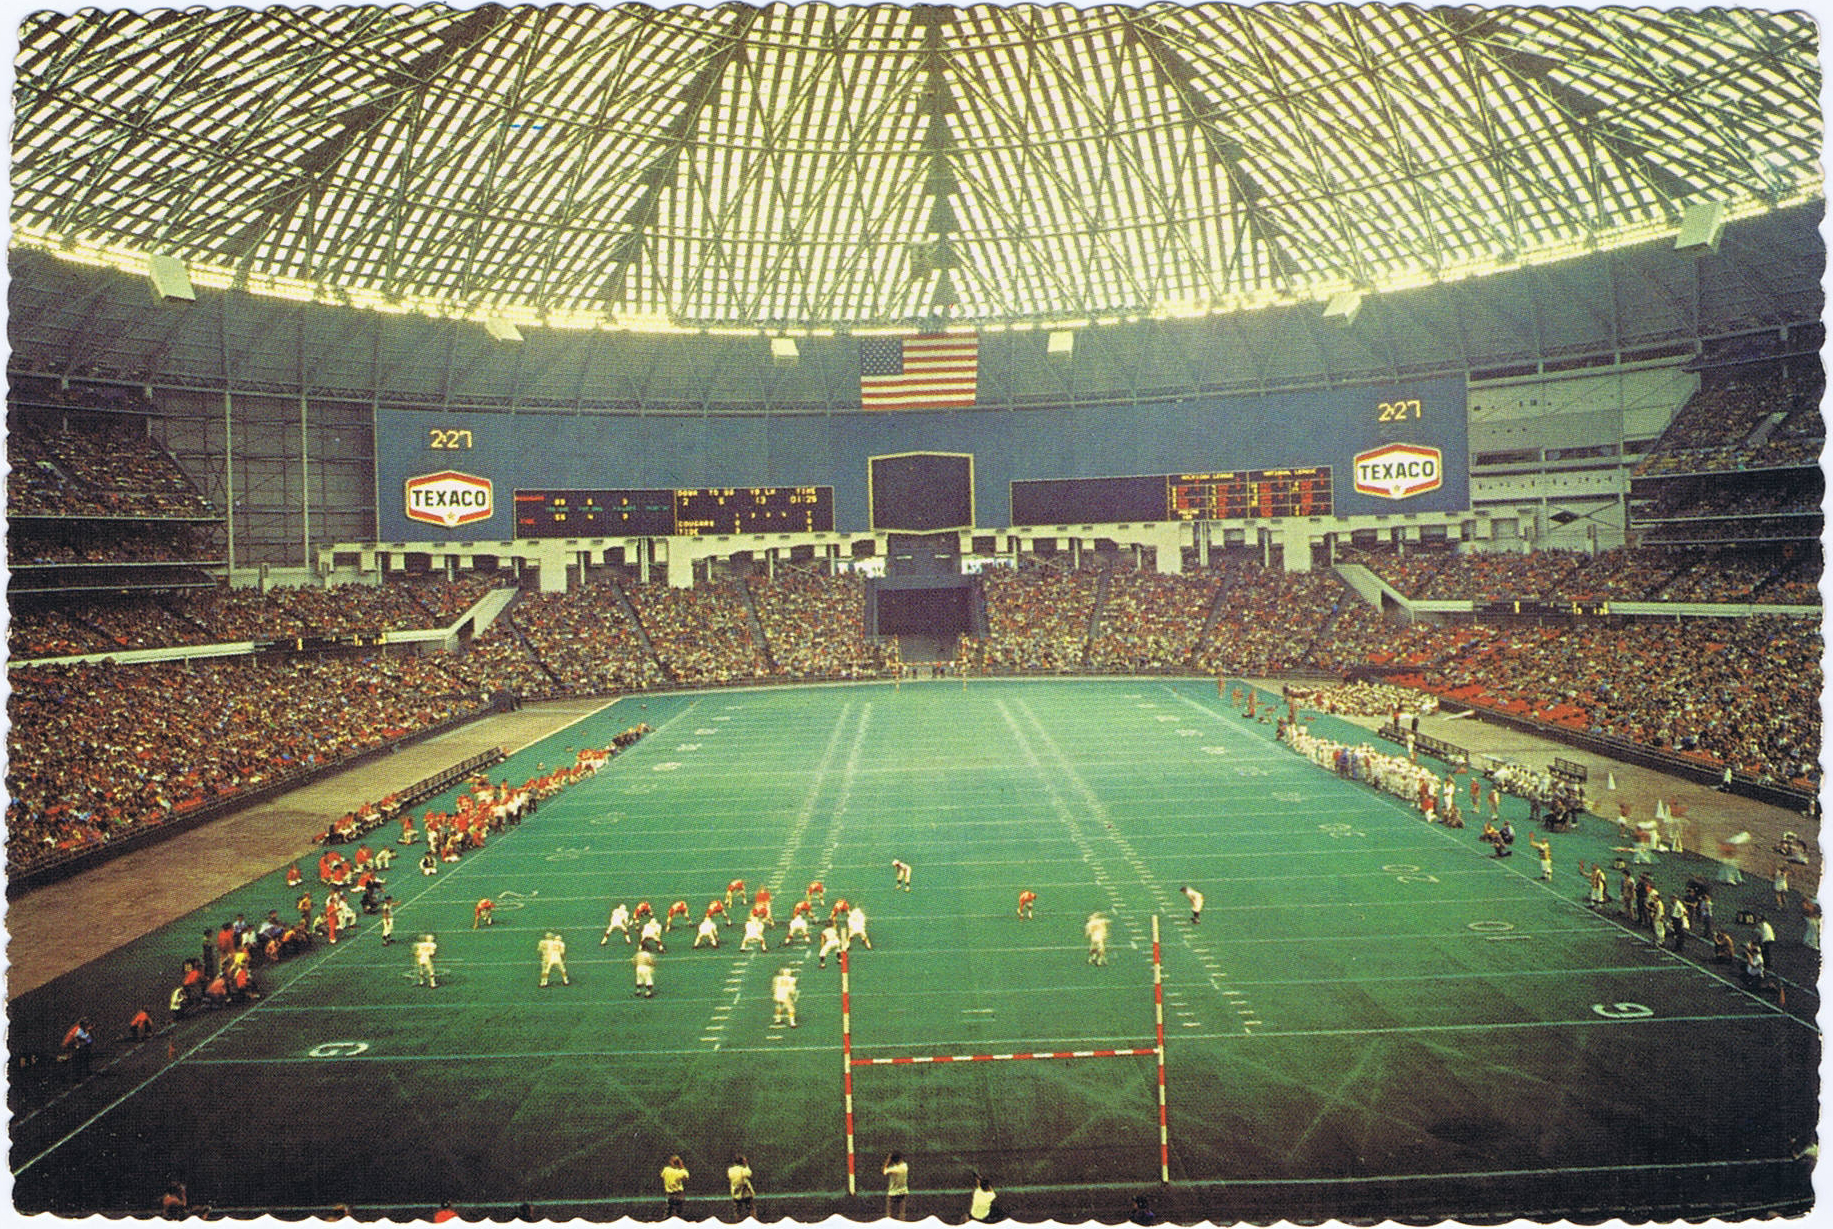 The Astrodome was home to the Houston Oilers prior to the team's move to Tennessee